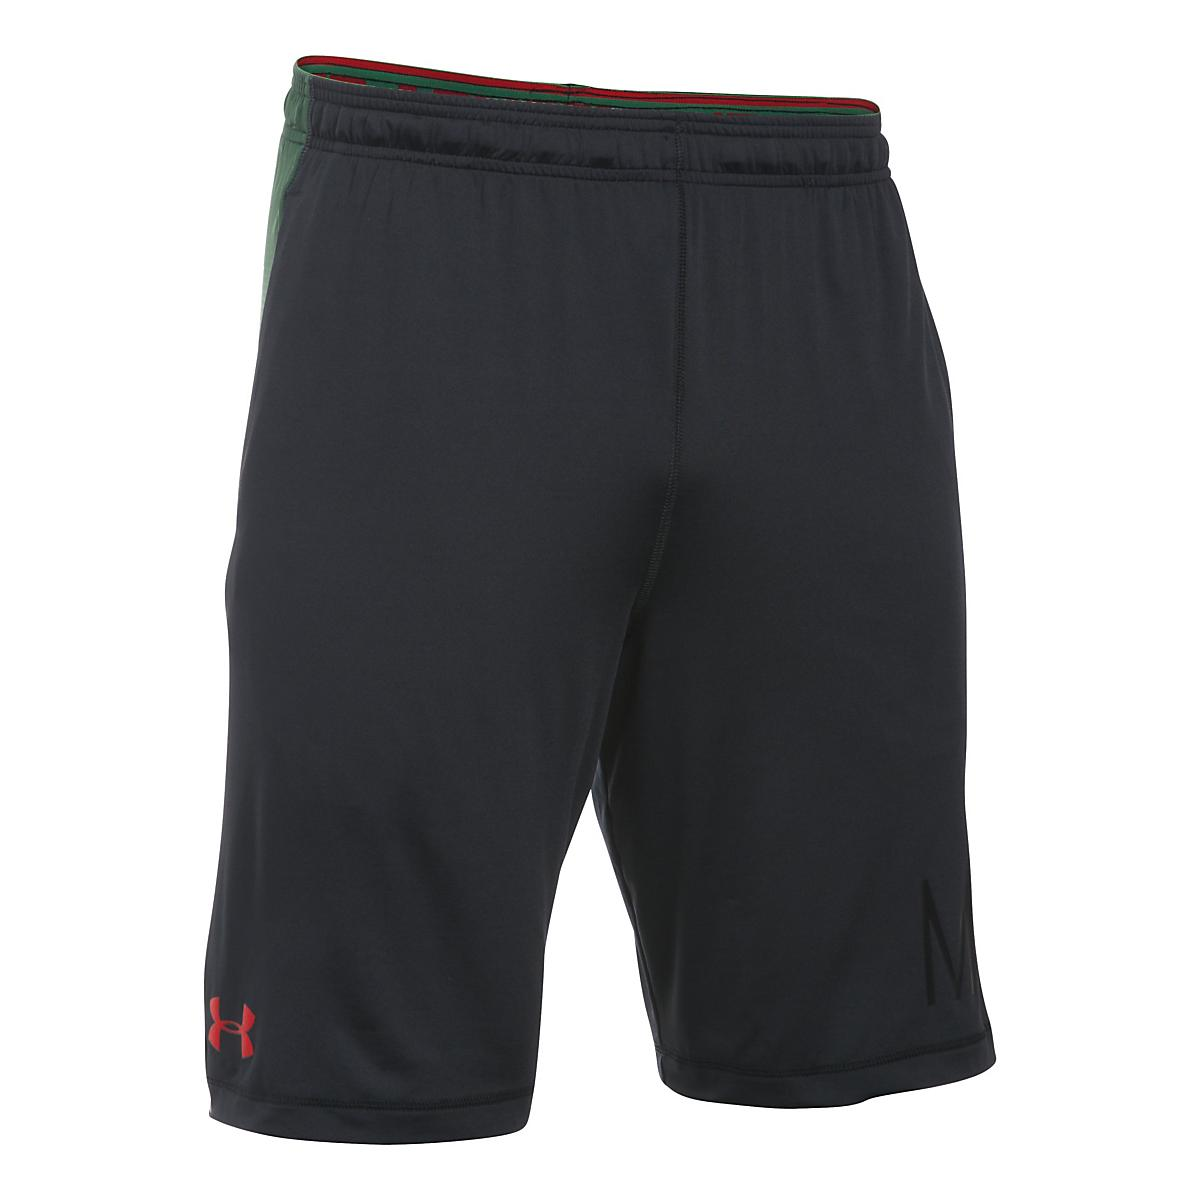 Men's Under Armour�Mexico Country Pride Short